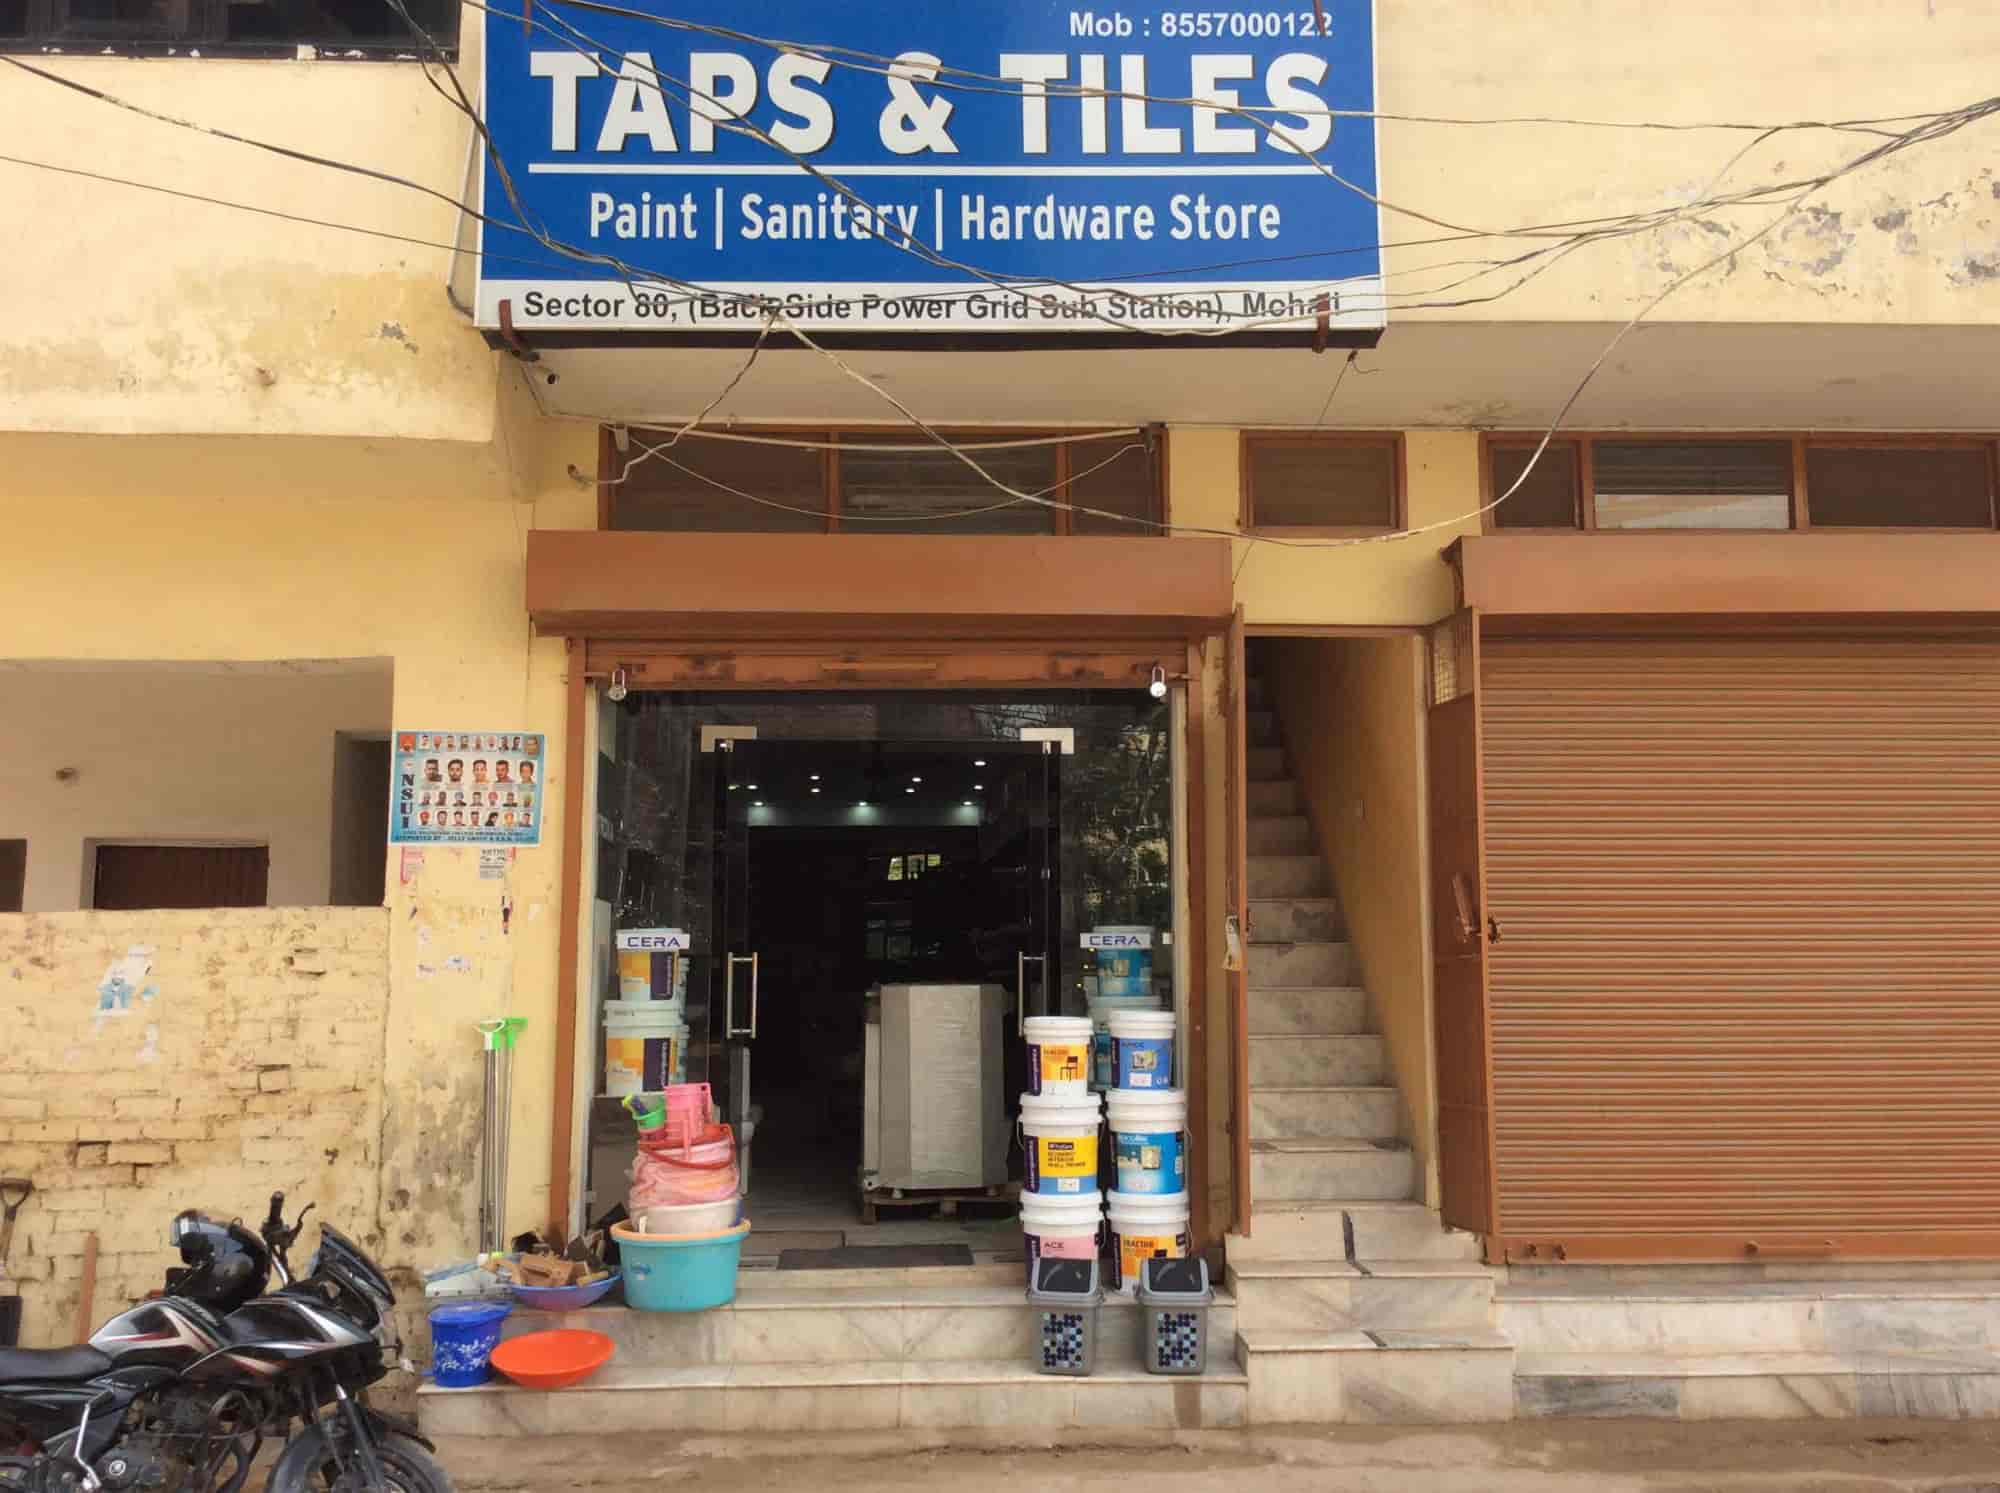 Taps Tiles Sanitary Hardware Store Photos, Sector 80, Chandigarh ...